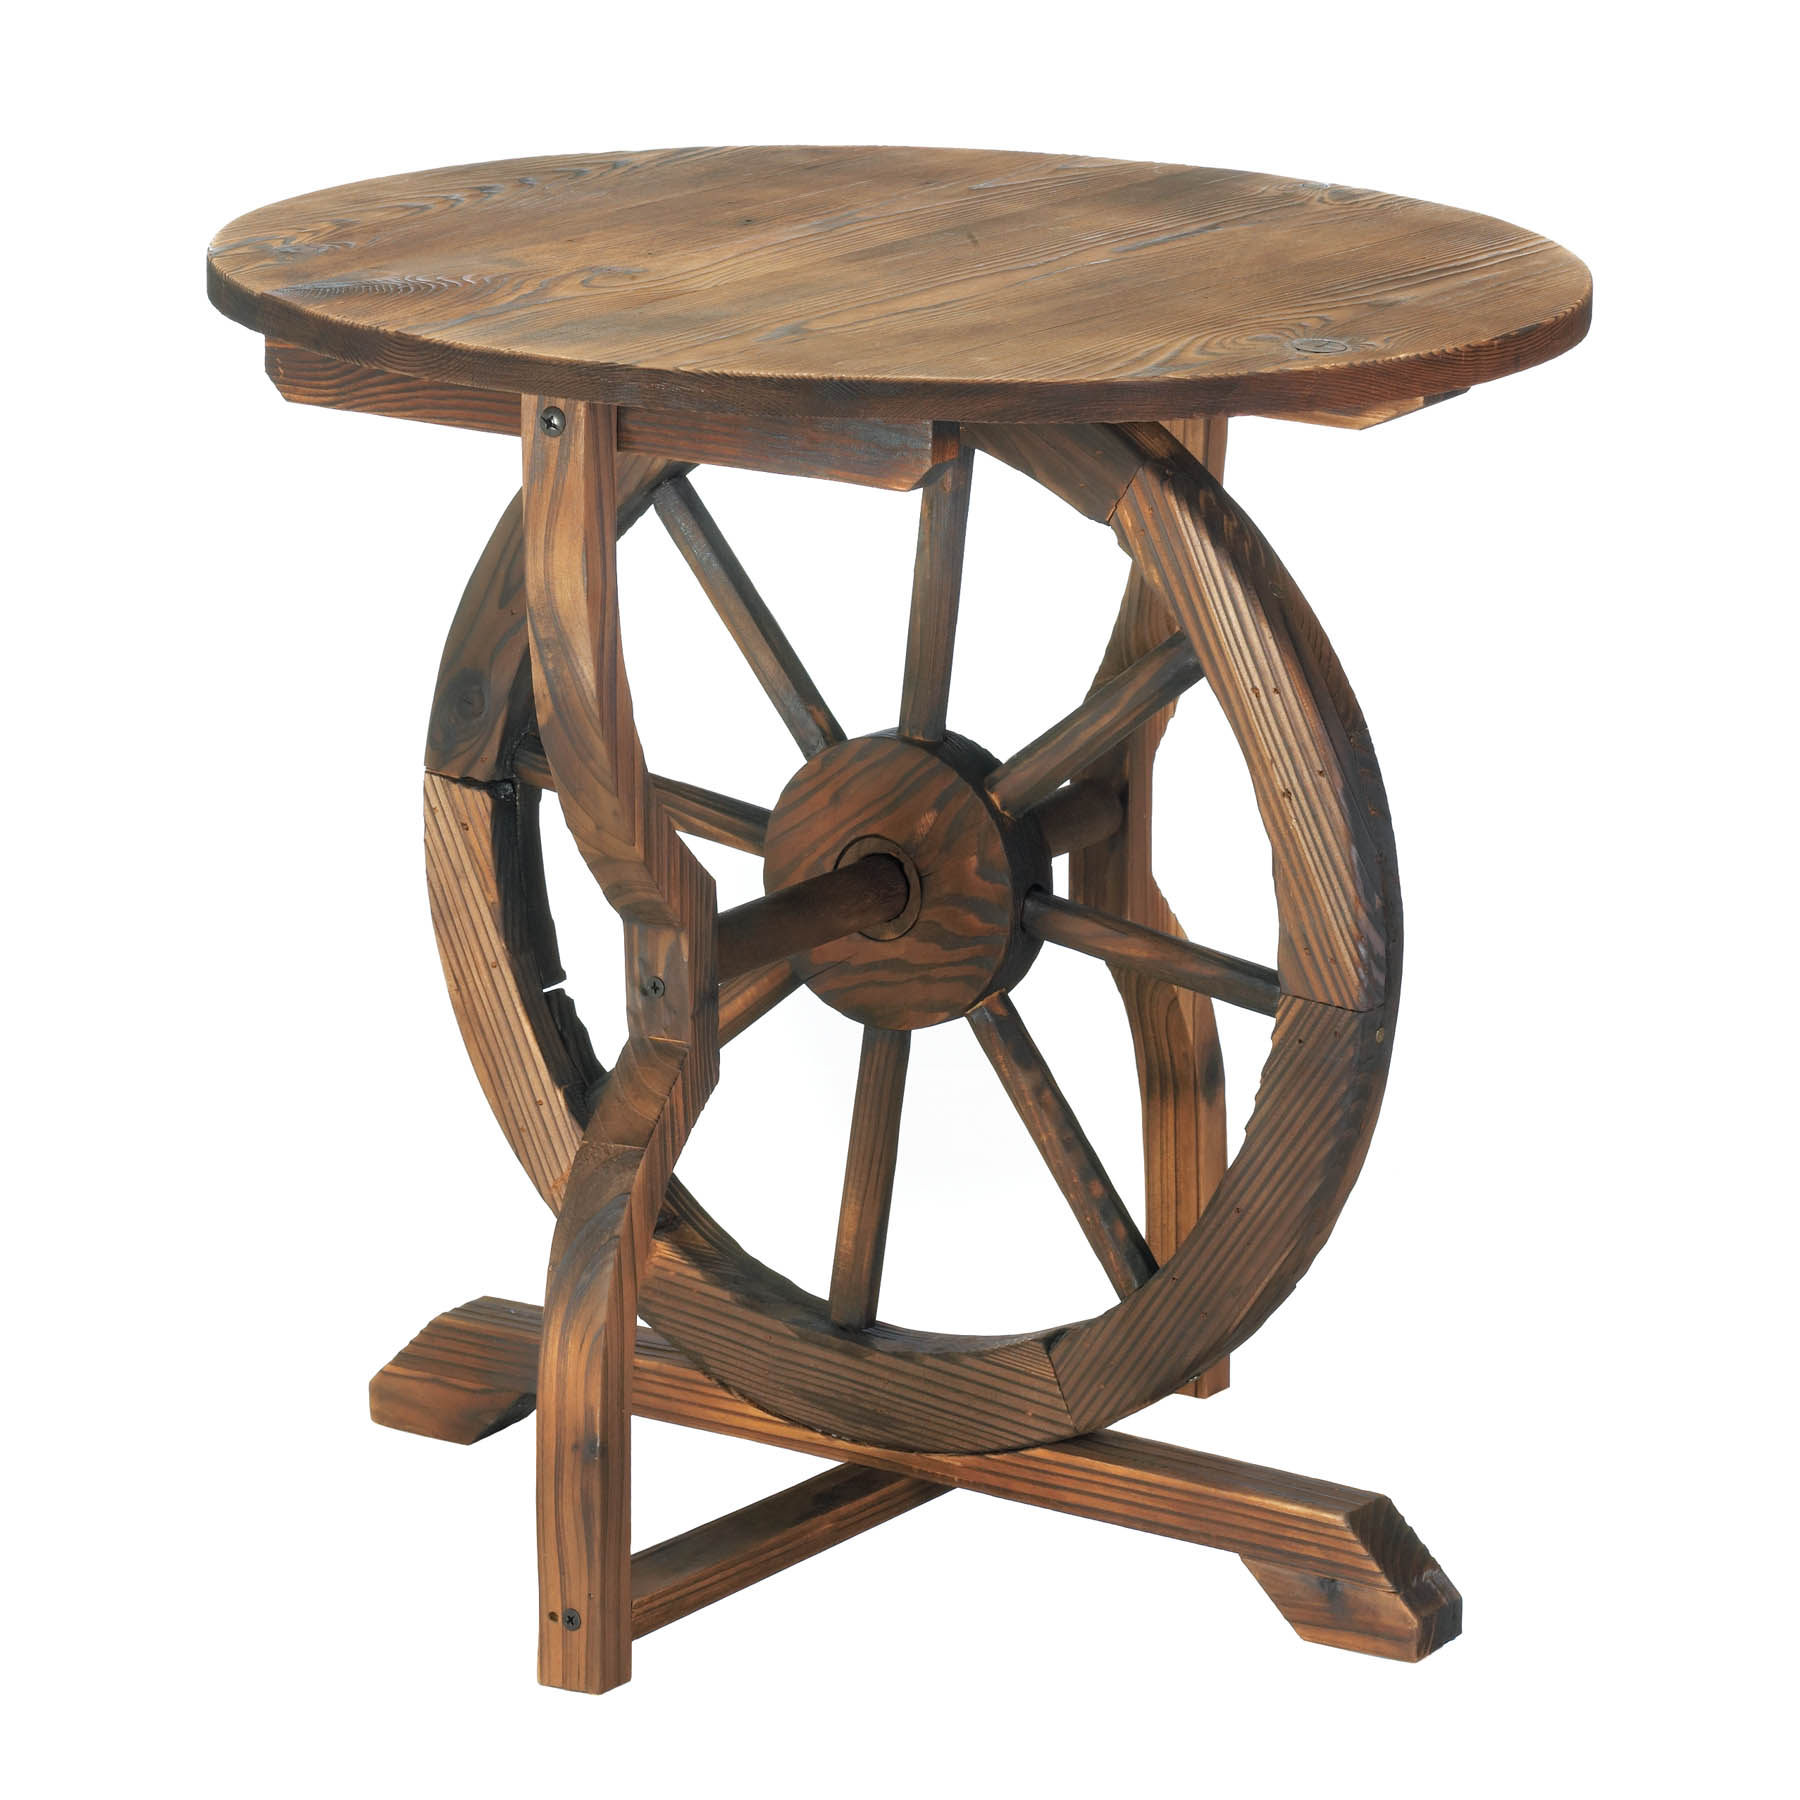 rustic chic wagon wheel wood accent table decor stock ture side with umbrella hole metal yellow square farmhouse coffee living room cabinets round and pier imports patio furniture